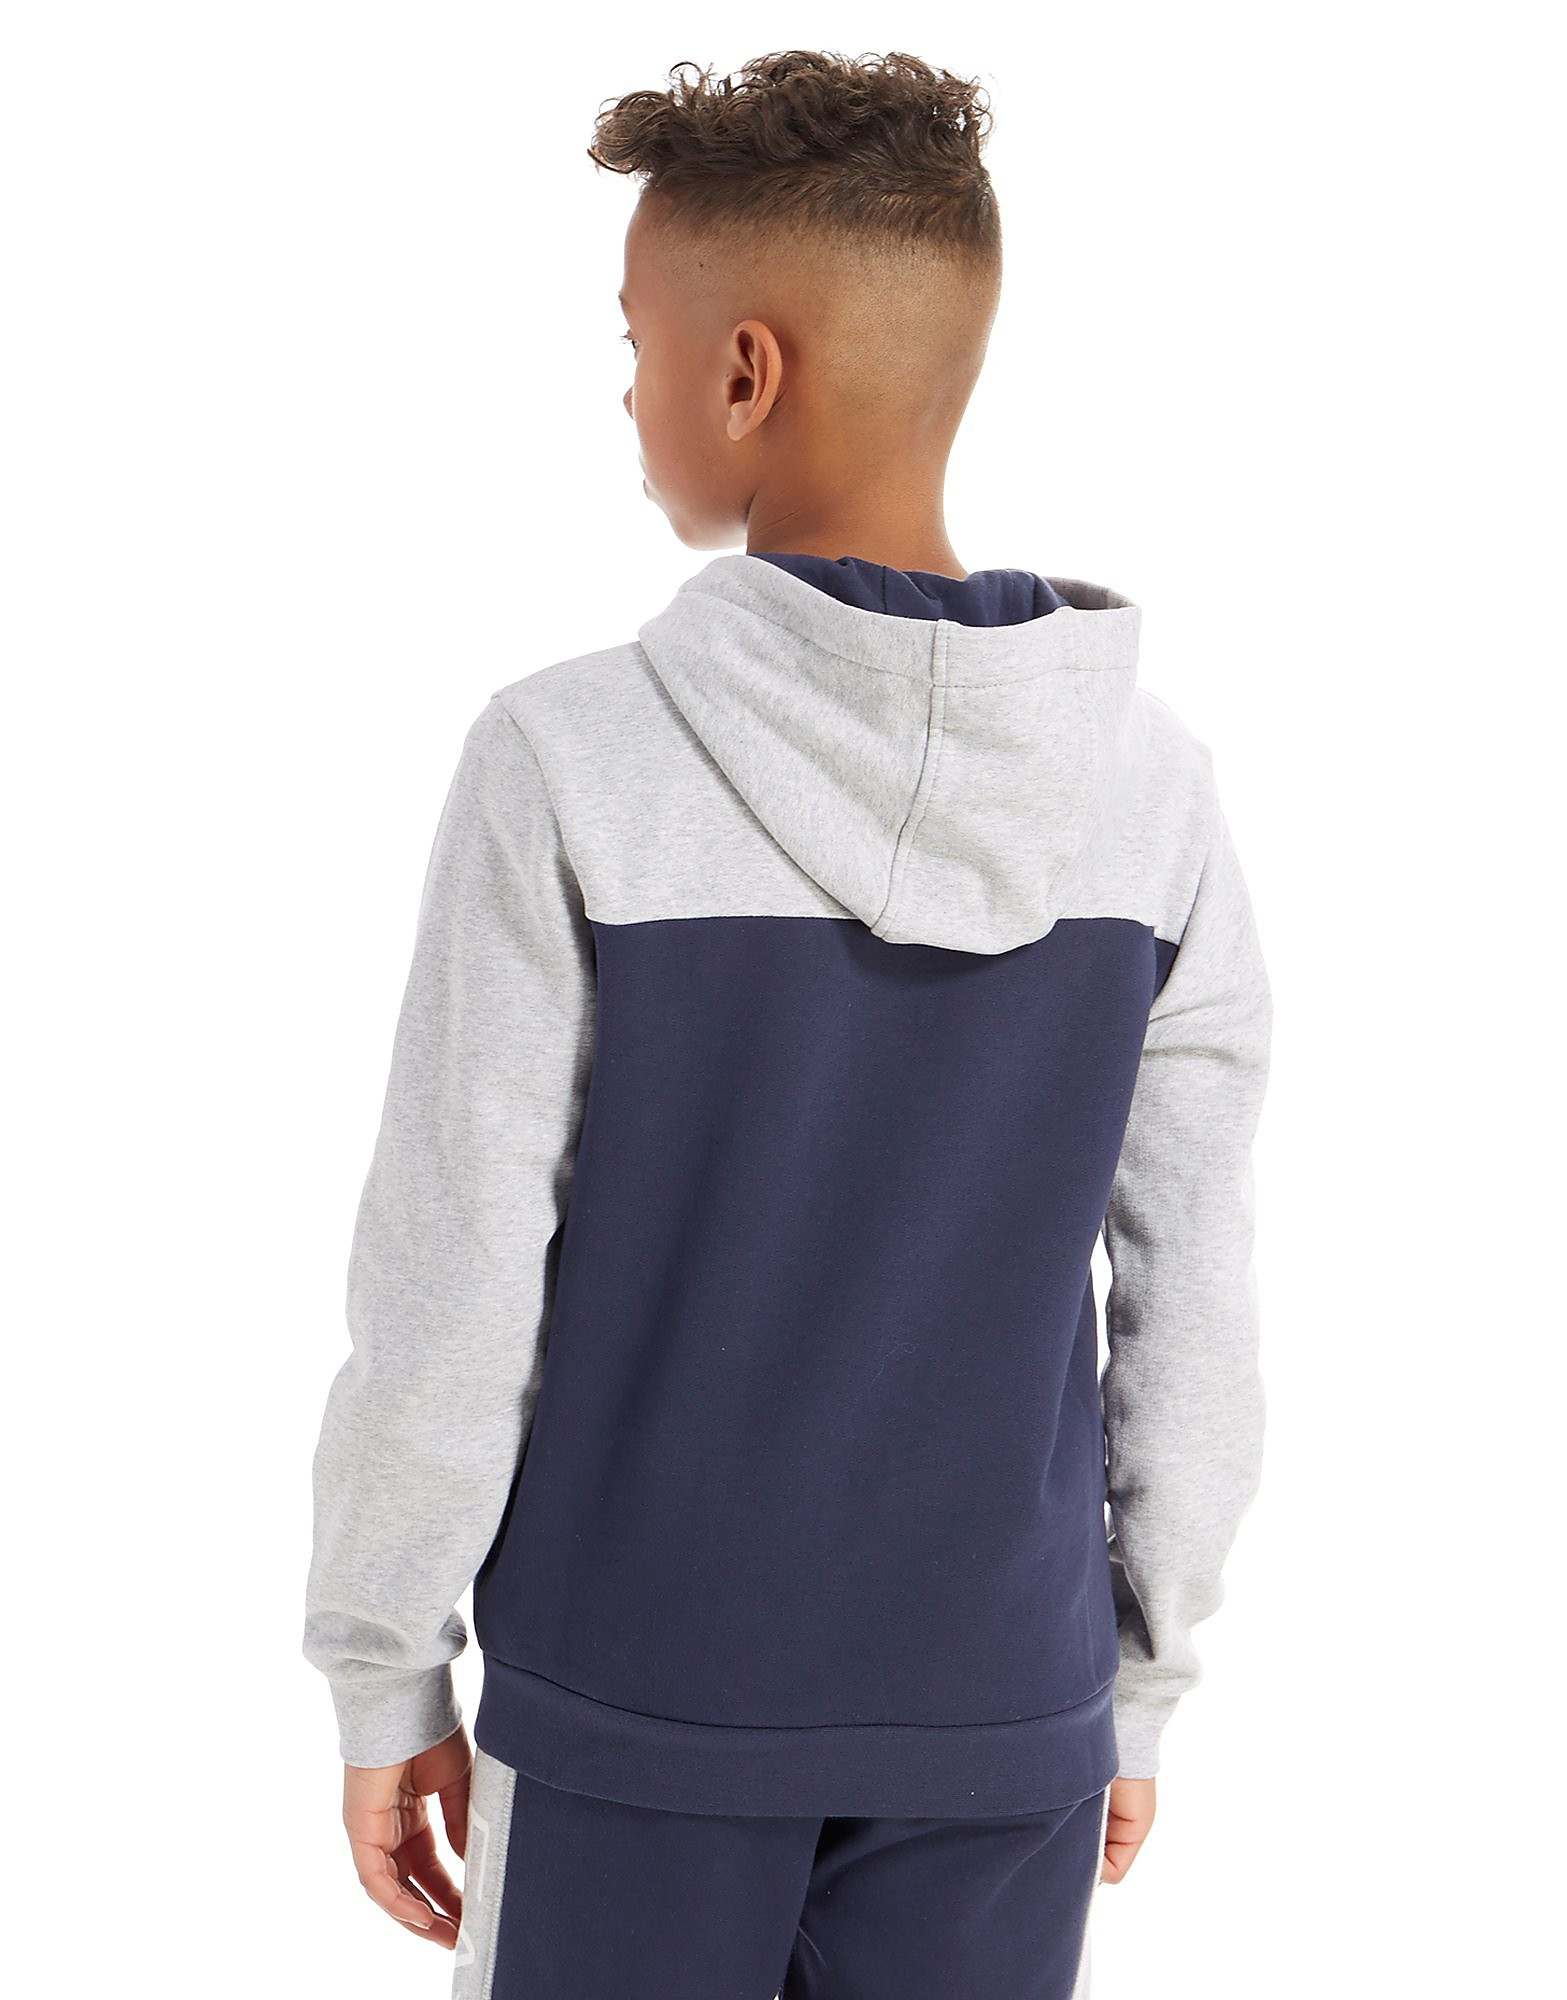 Emporio Armani EA7 Colourblock Fleece Overhead Hoodie Junior